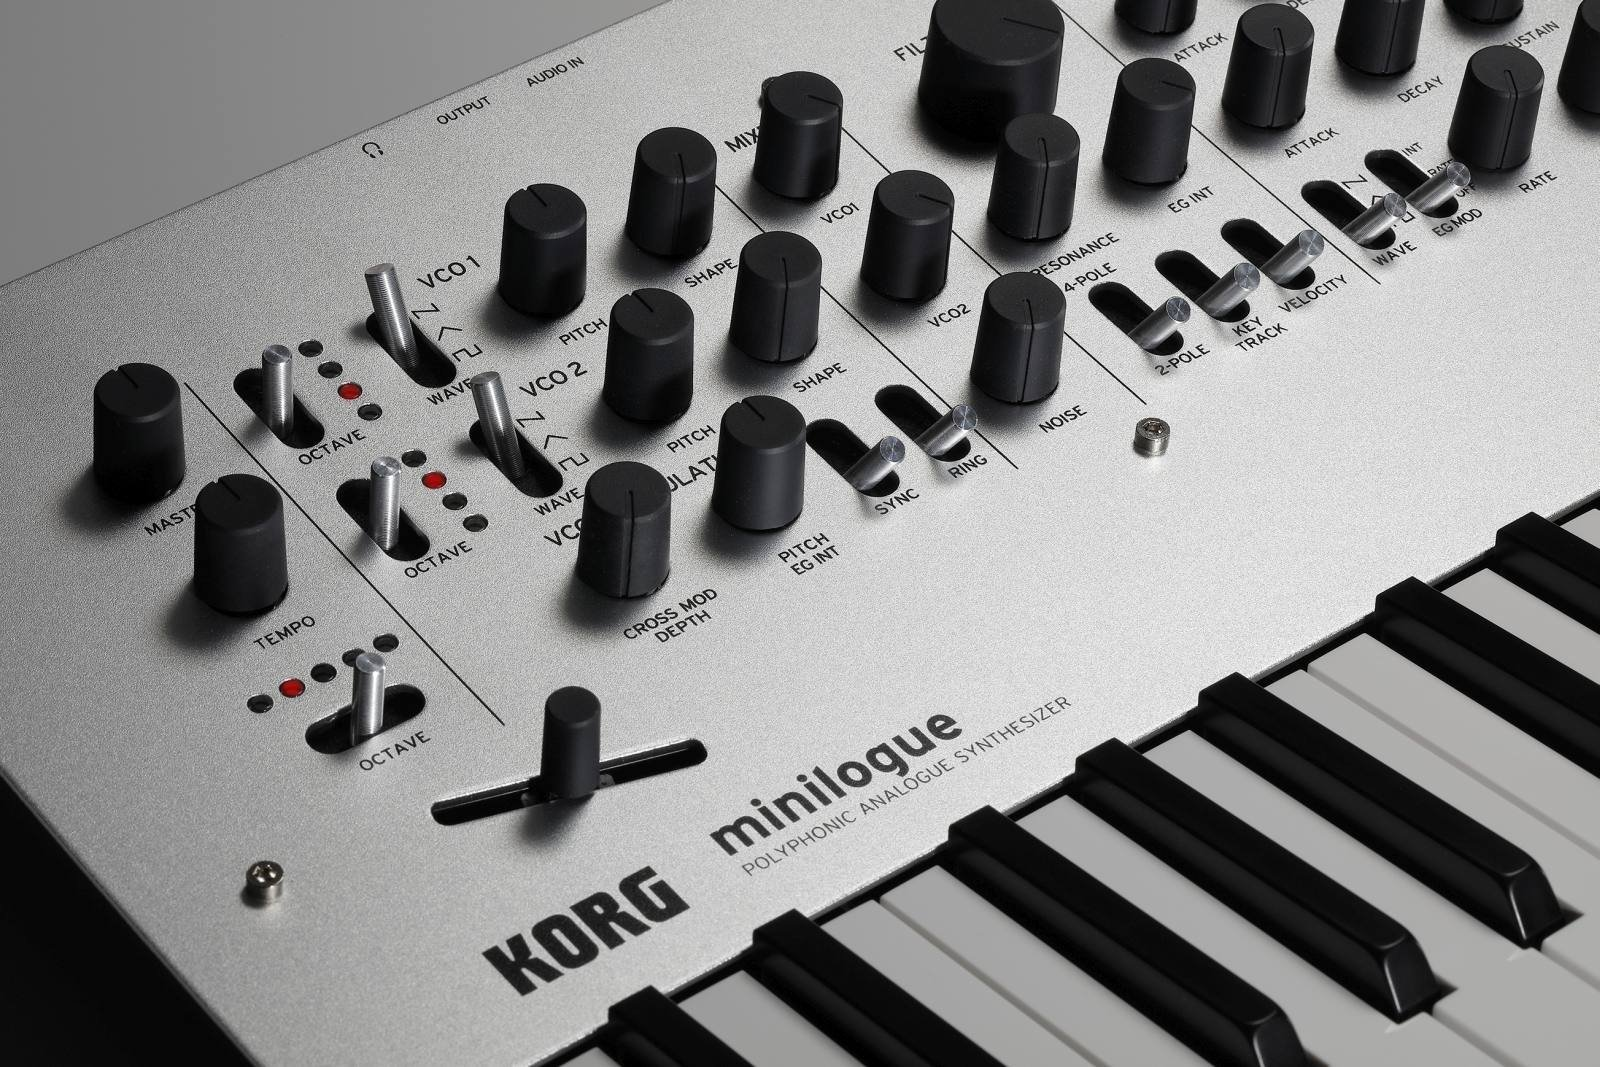 Korg Minilogue 4-Voice Polyphonic Analog Synth with Presets by Korg (Image #6)